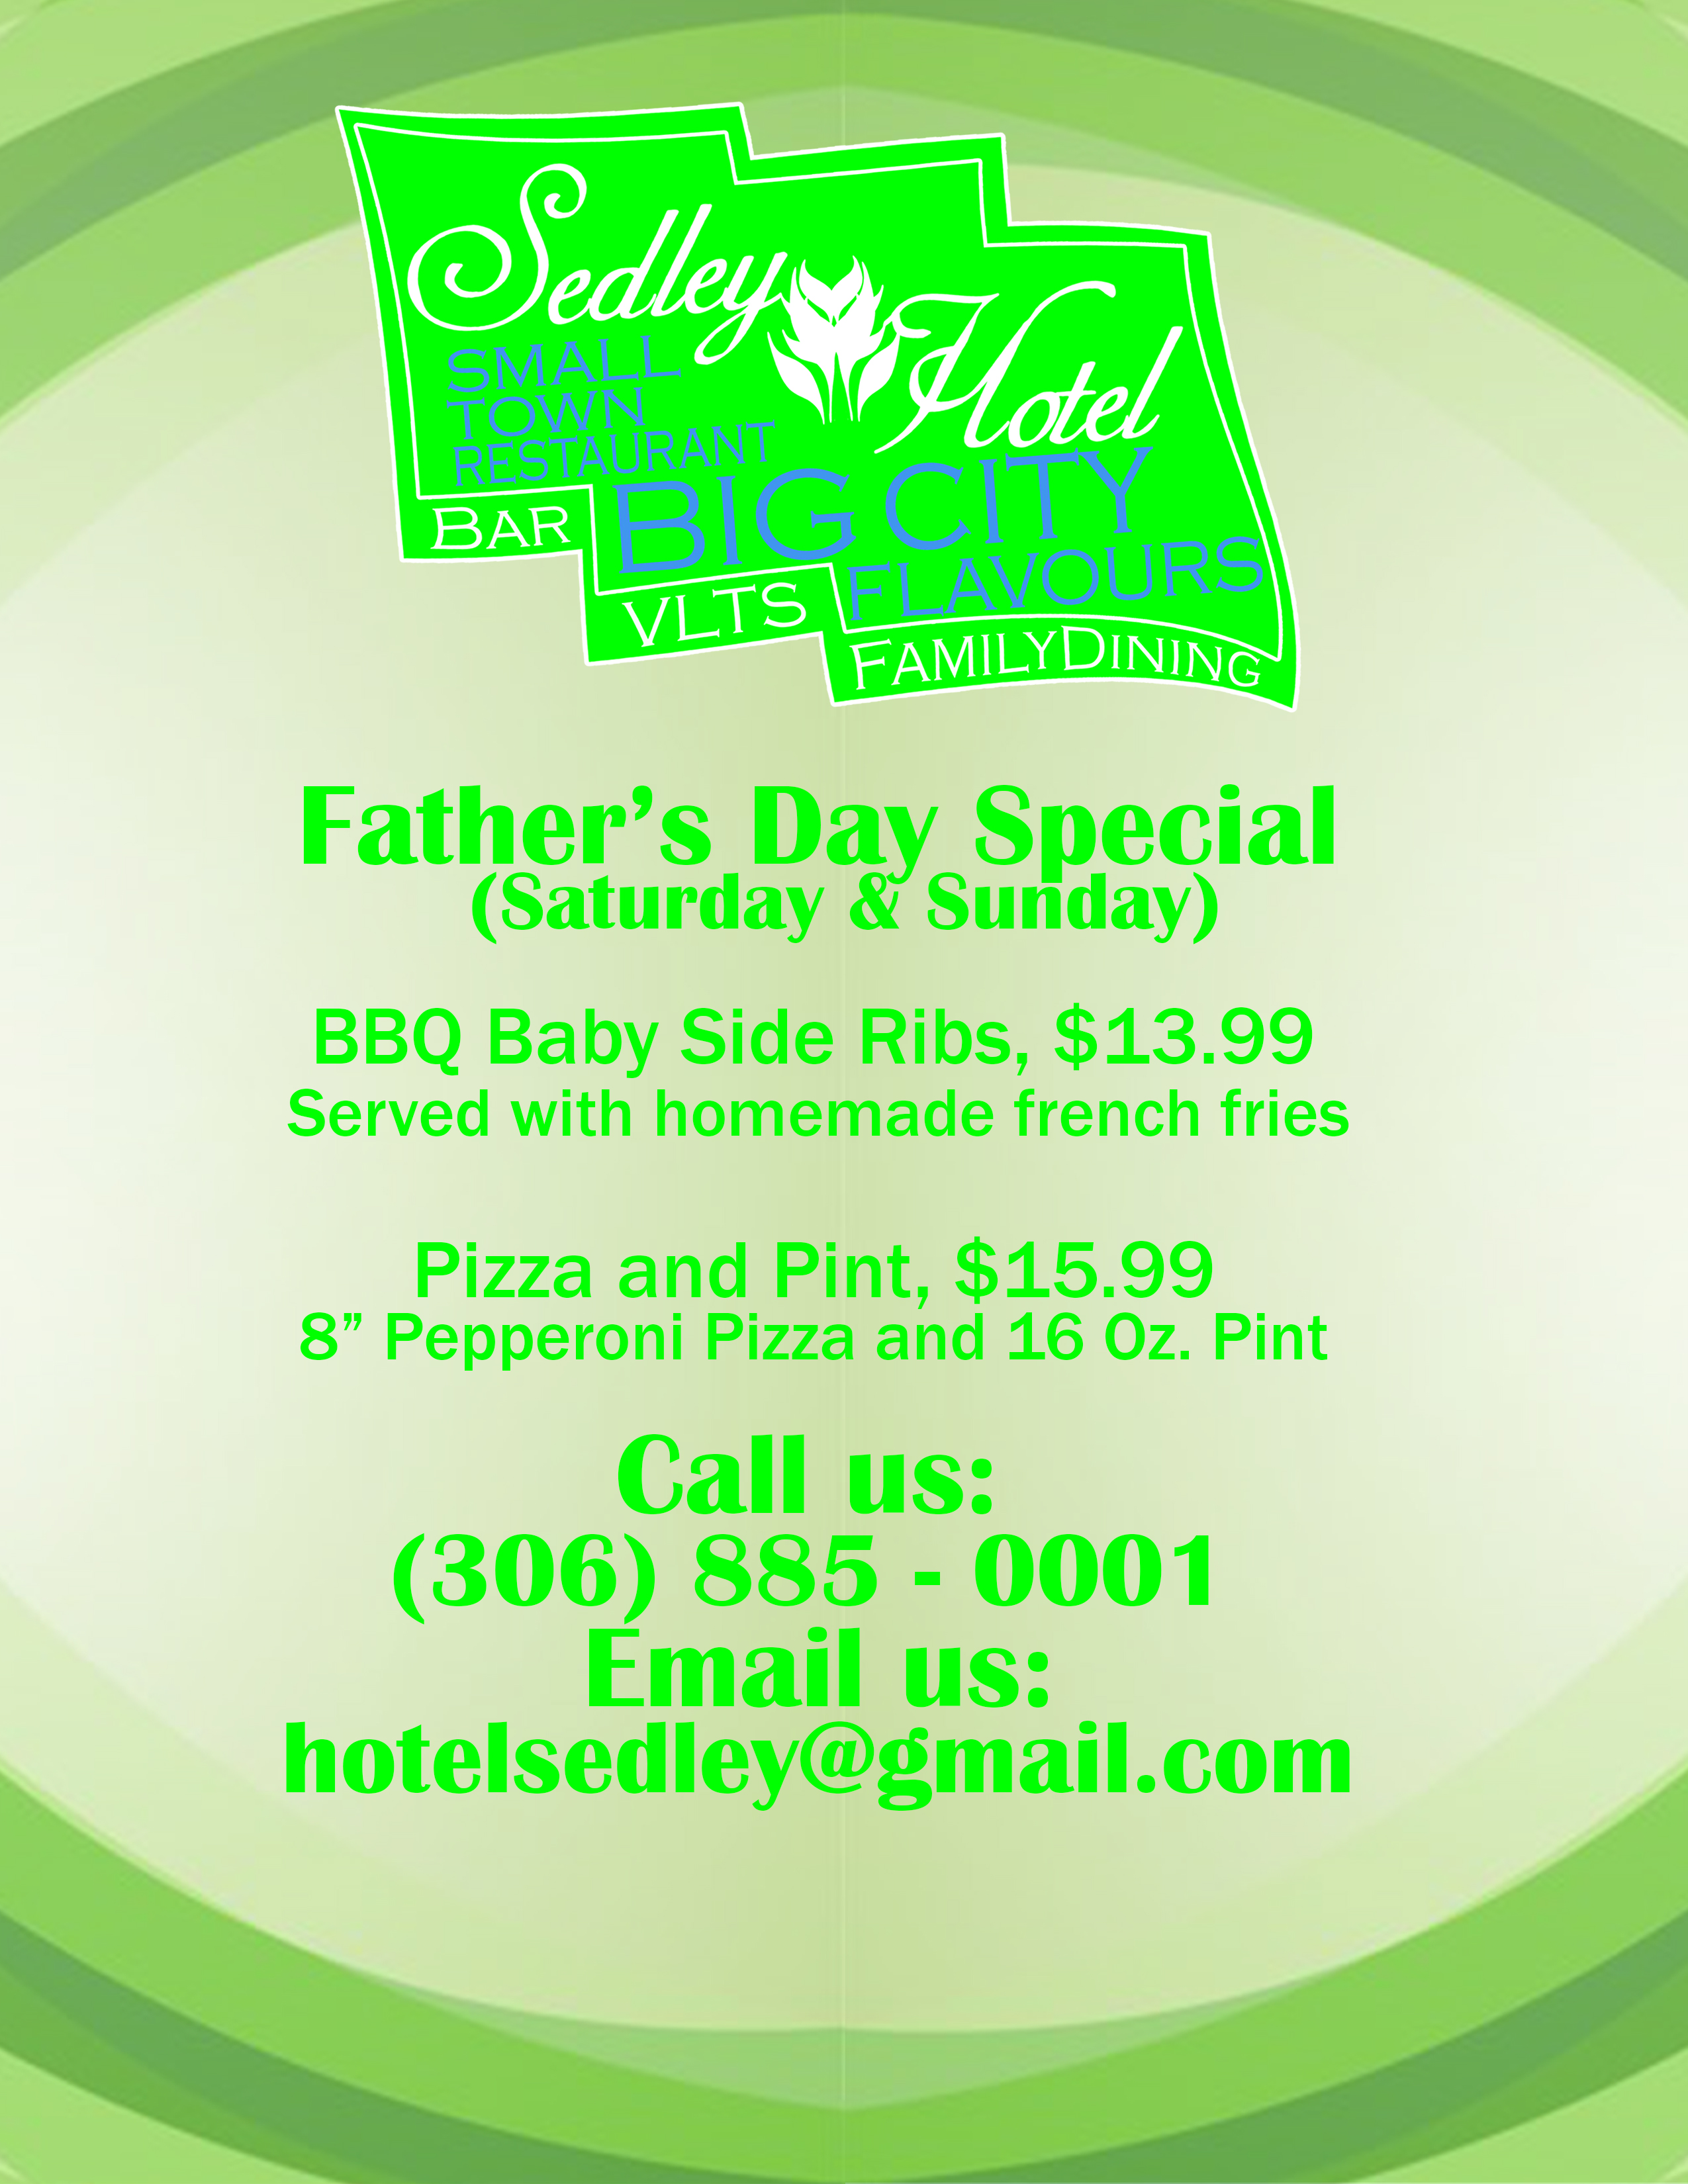 Father's Day Special Flyer 2